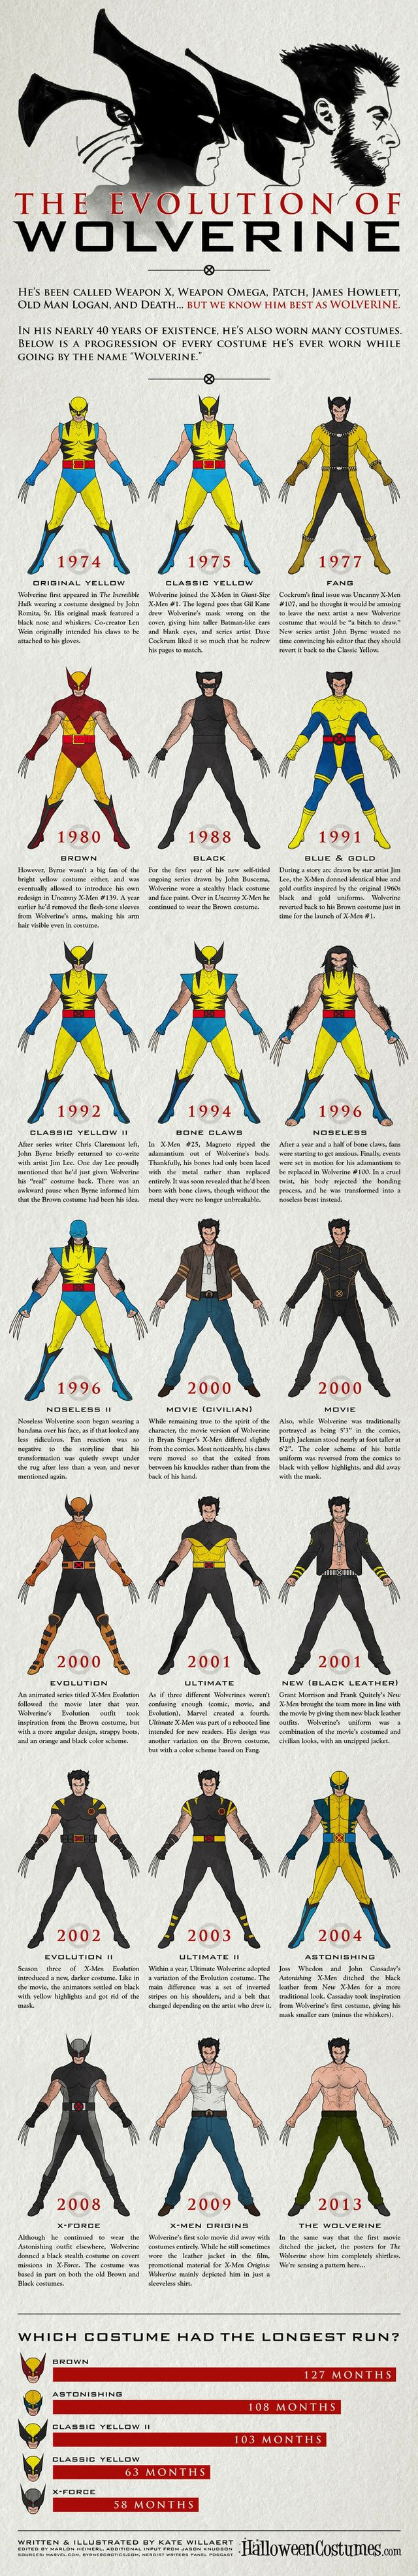 The Complete Visual History of Wolverine's Suit #wolverine --I mostly want to know who draws this, and would love to see an up-to-date and comprehensive version of Spider-Man. Tried something on my blog but got nervous with copyright laws...